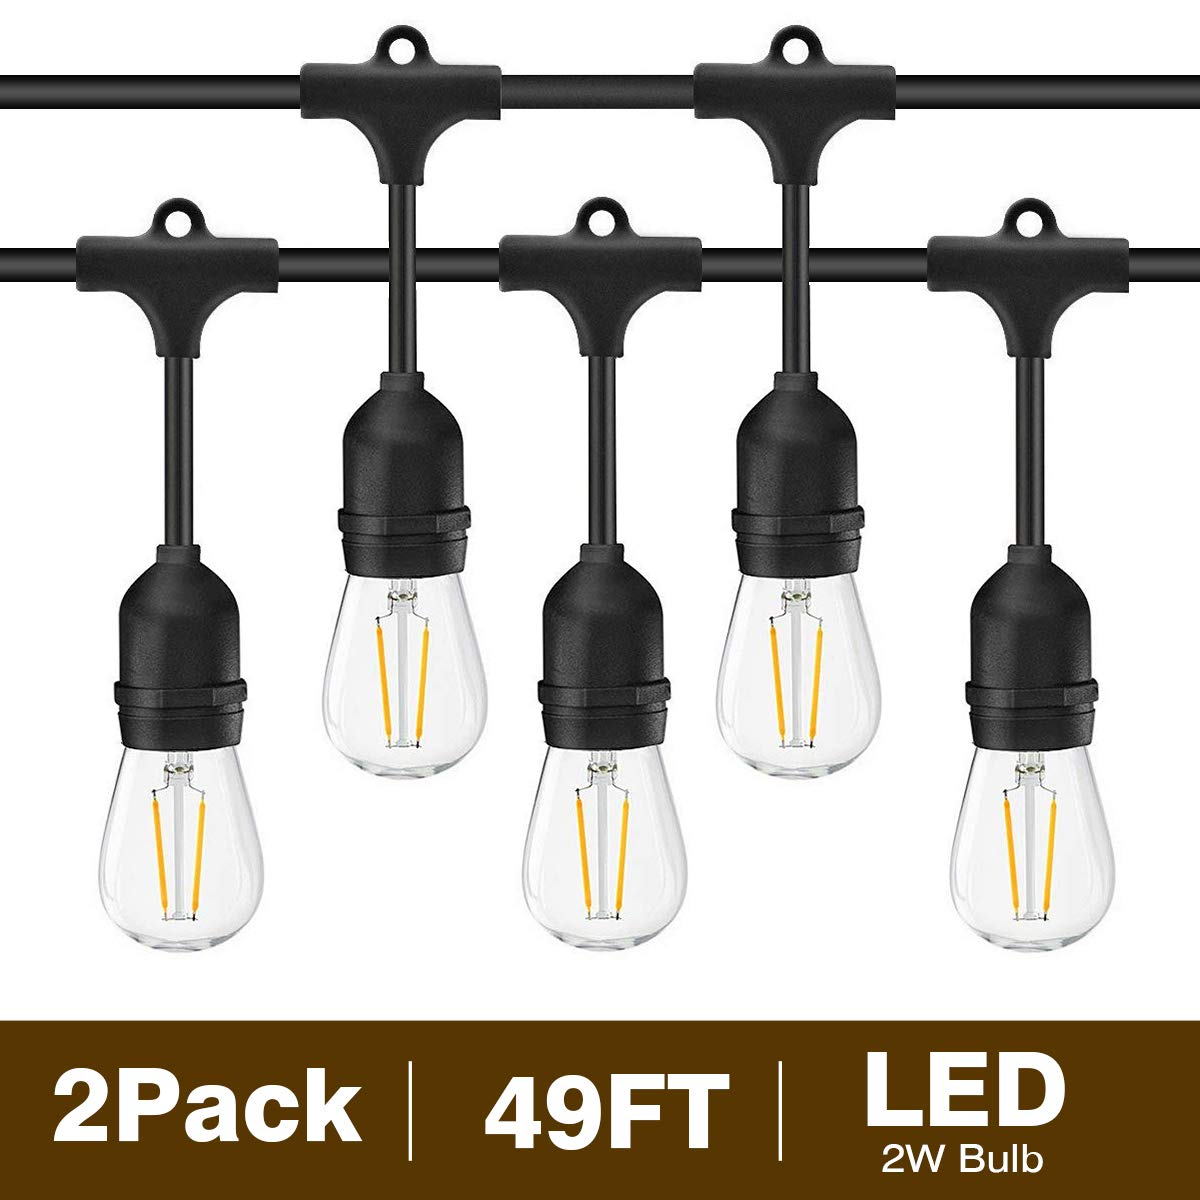 Svater 2 Pack S14 LED String Lights 49Ft Waterproof IP65 Commercial Grade Outdoor String Light UL Listed 15 Hanging Sockets 15 S14 2W LED Bulbs E26 Base Warm White 2700K Open-air party Patio